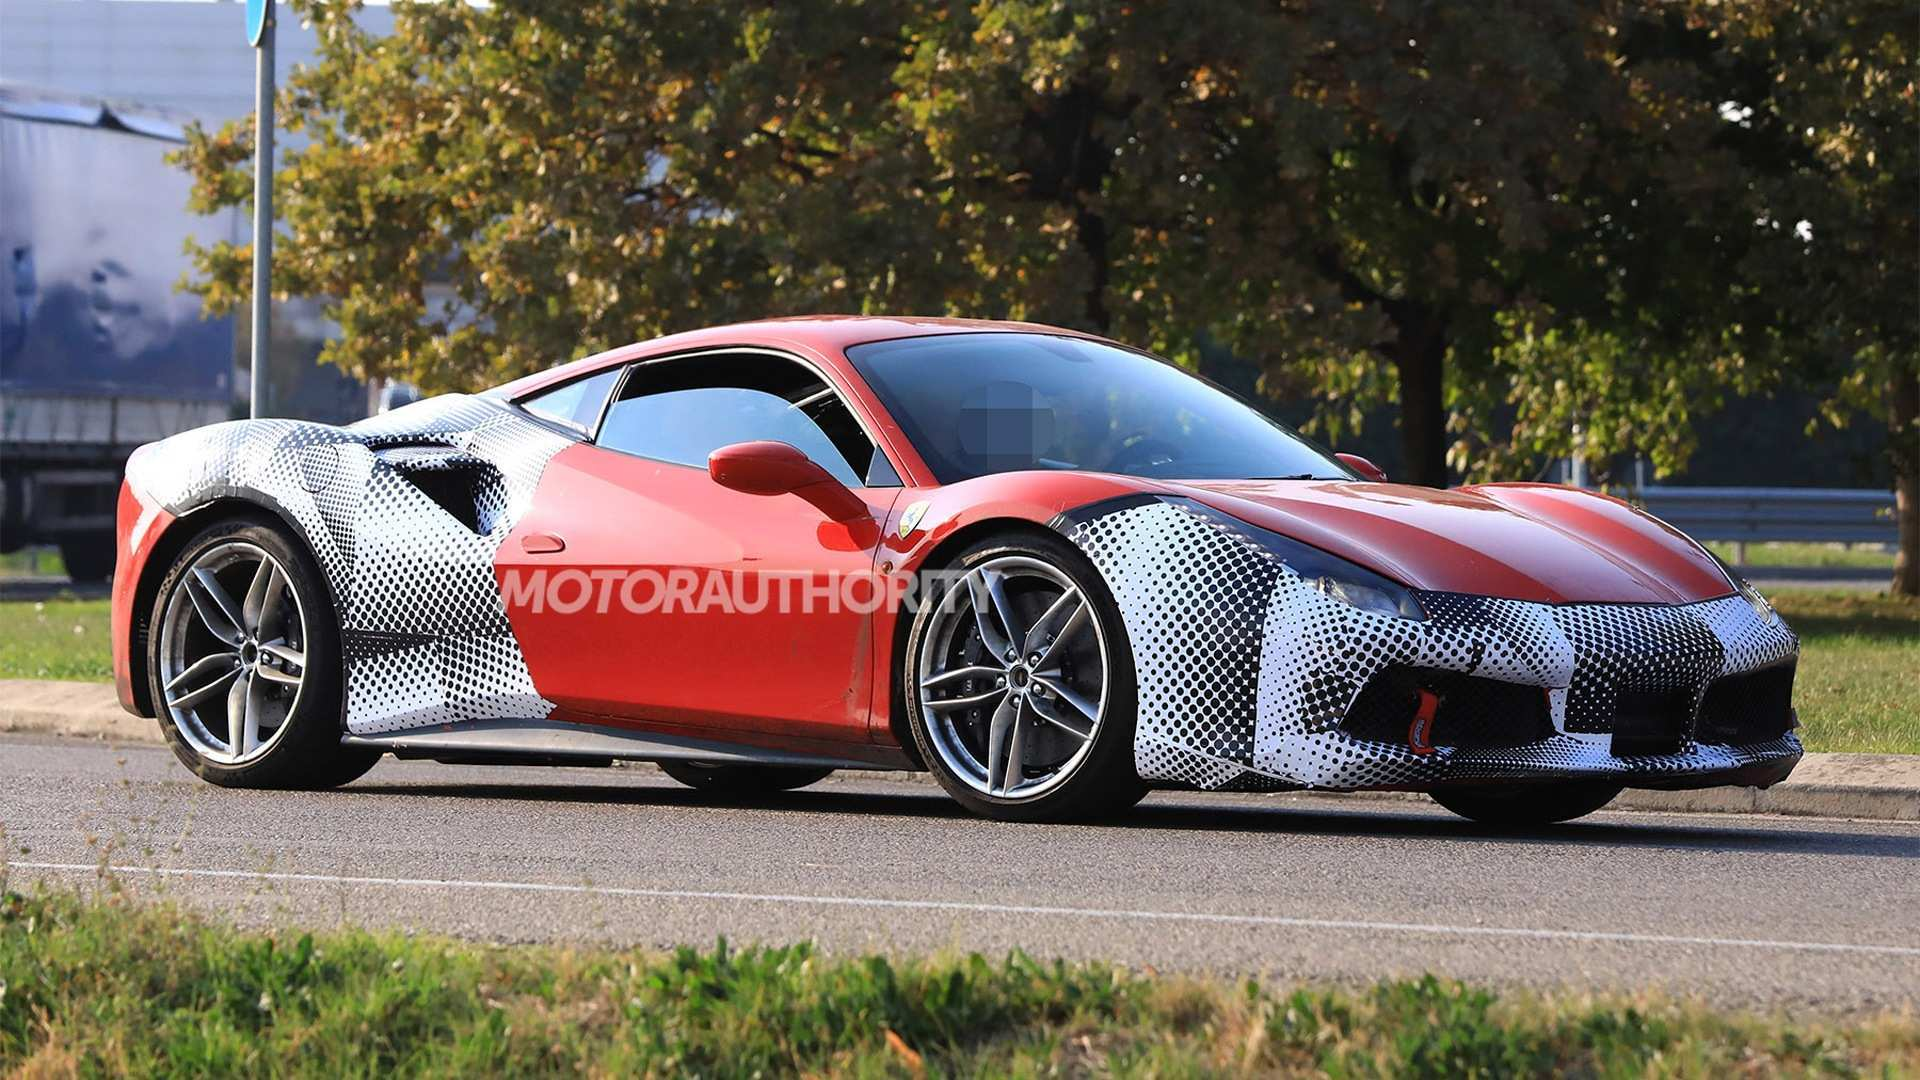 39 All New 2019 Ferrari Gto Performance and New Engine with 2019 Ferrari Gto